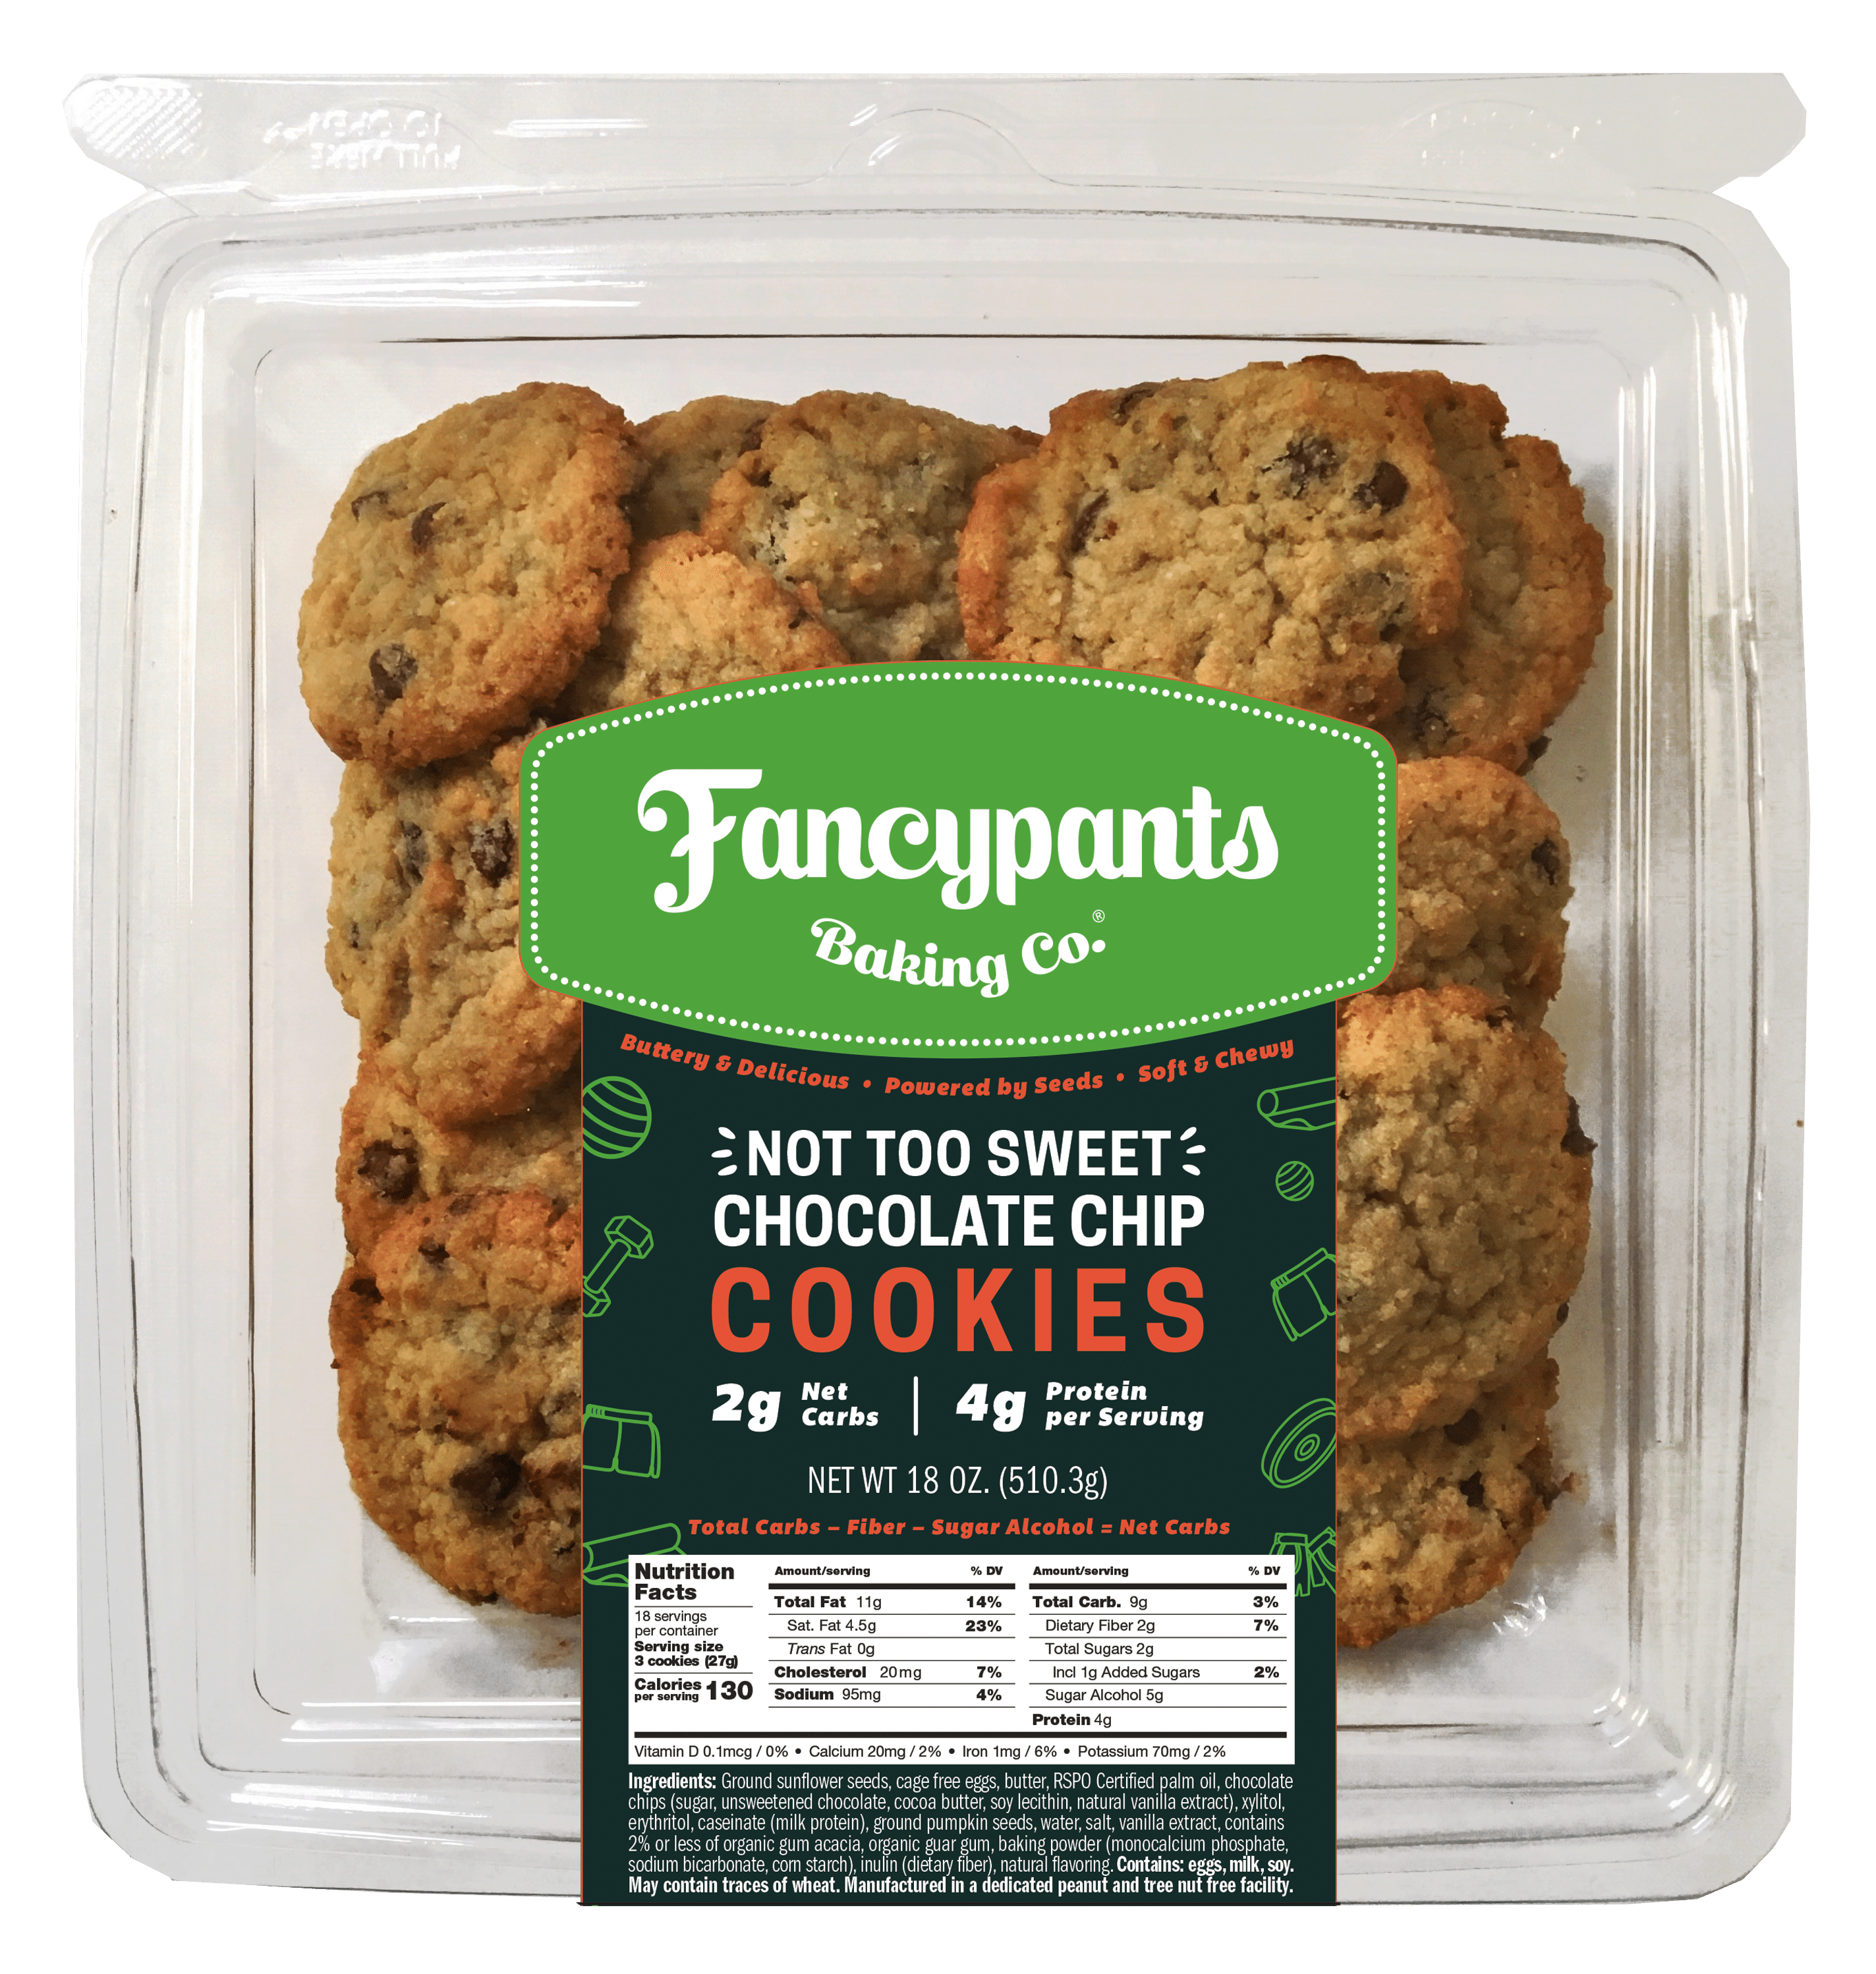 Fancypants Baking Co. to Launch New Line of Keto-Friendly Cookies at Winter Fancy Food Show